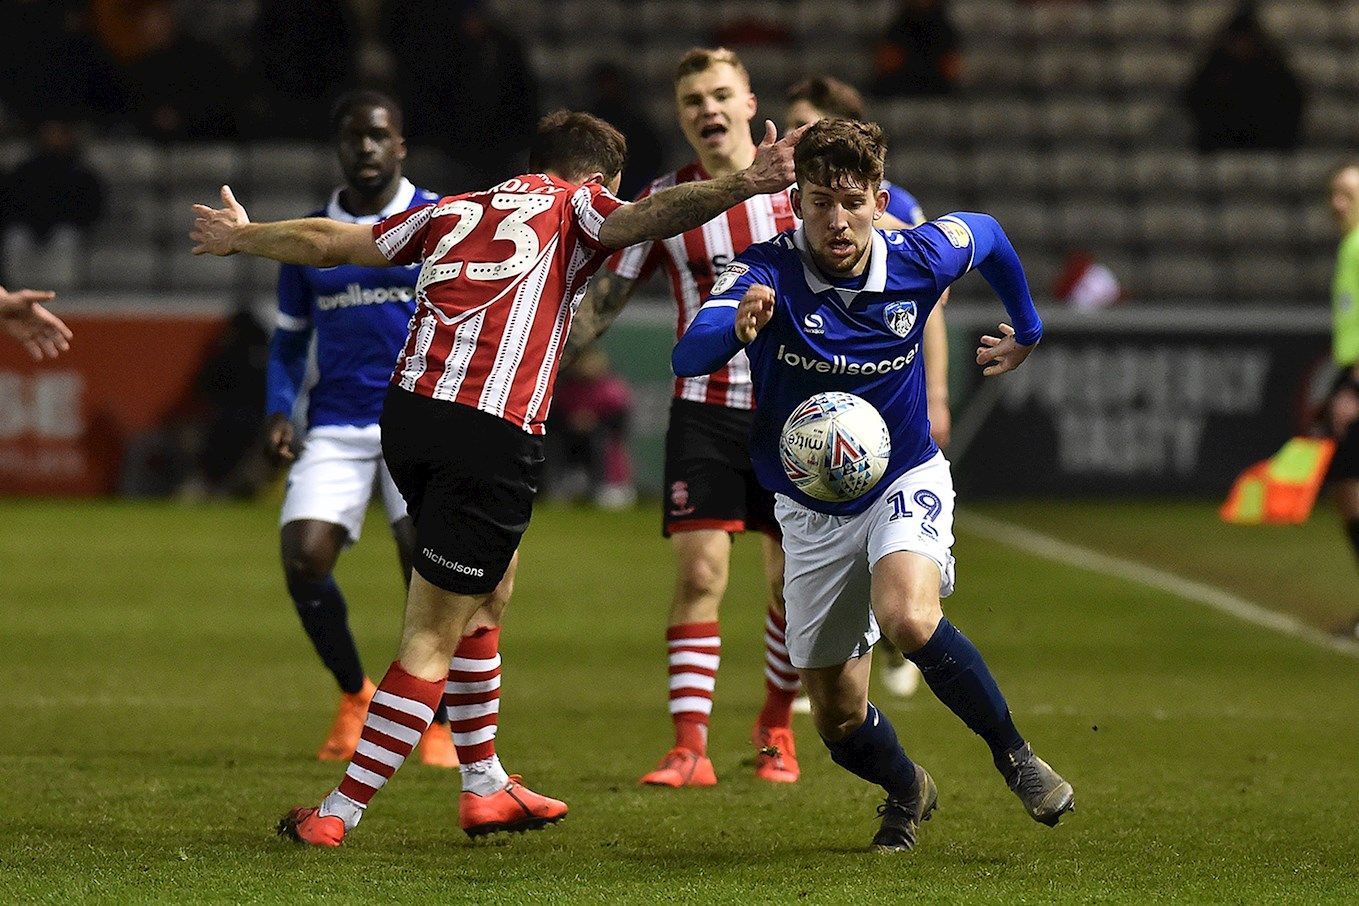 Vs Liverpool 2 0 Oldham: HIGHLIGHTS: Lincoln City 2-0 Oldham Athletic